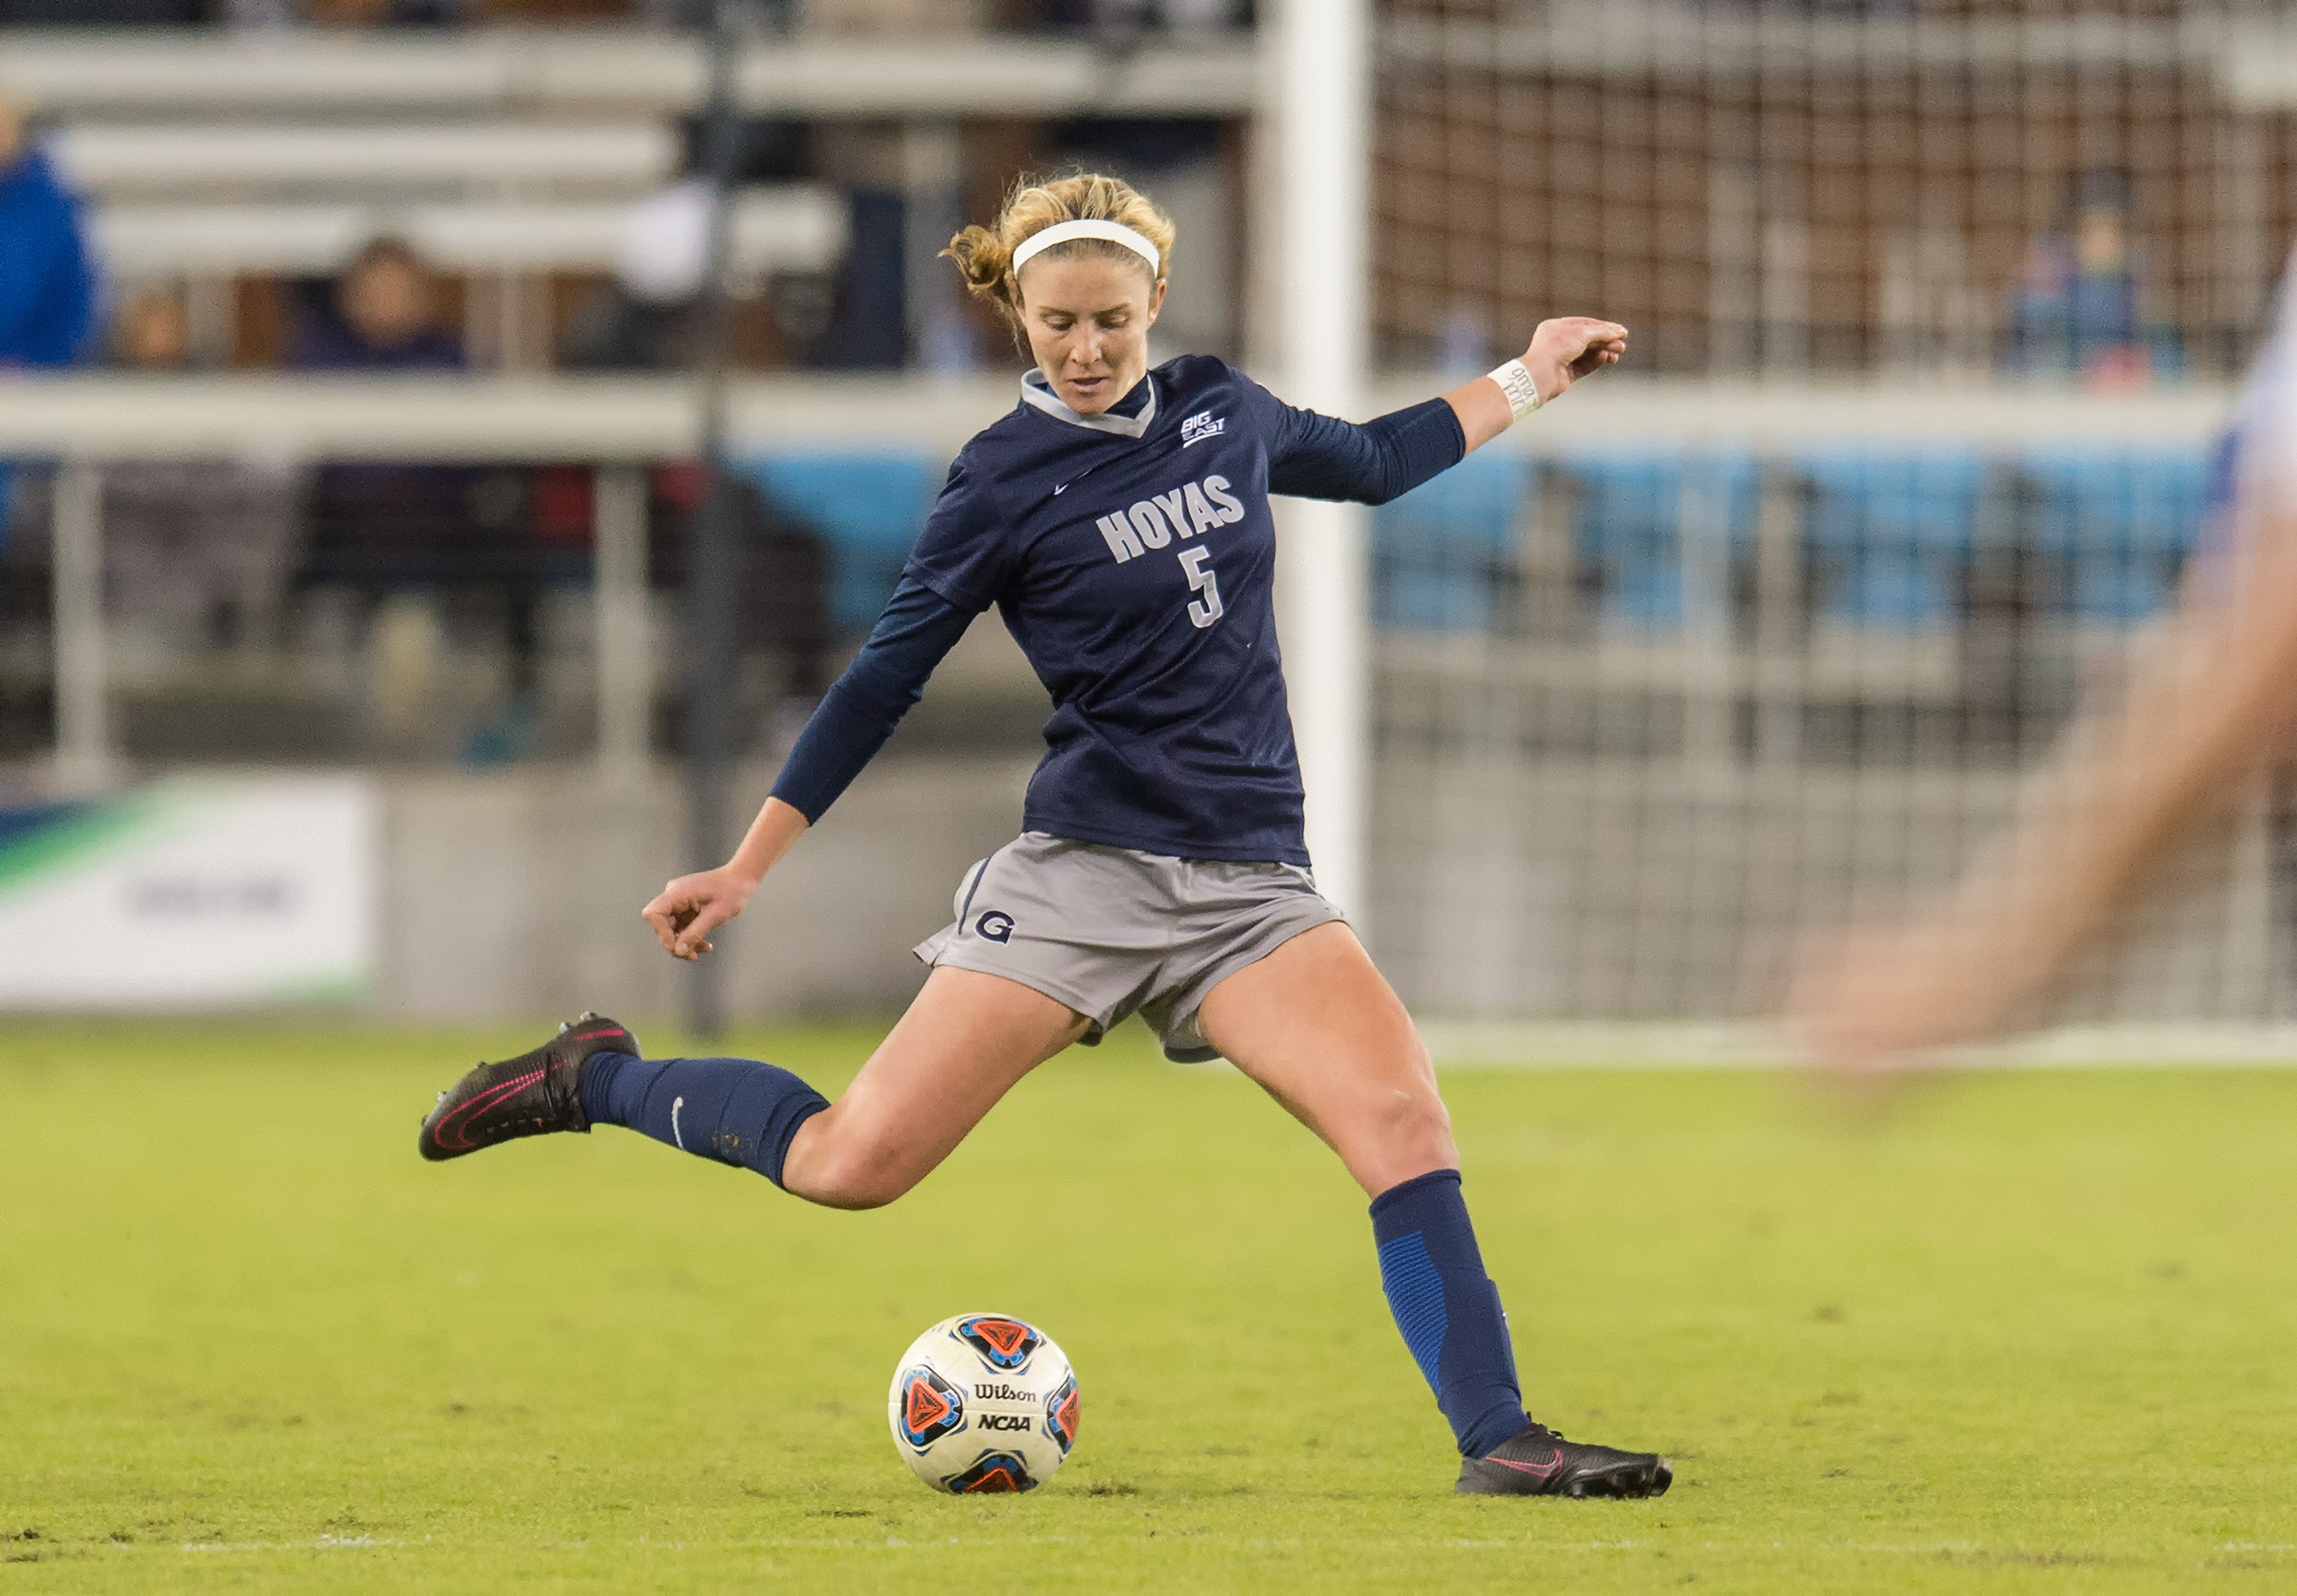 COURTESY GUHOYAS Graduate student defender Marina Paul started in 21 of the season's 26 games and scored four goals this year. The Hoyas' defense conceded only one goal during the NCAA tournament.